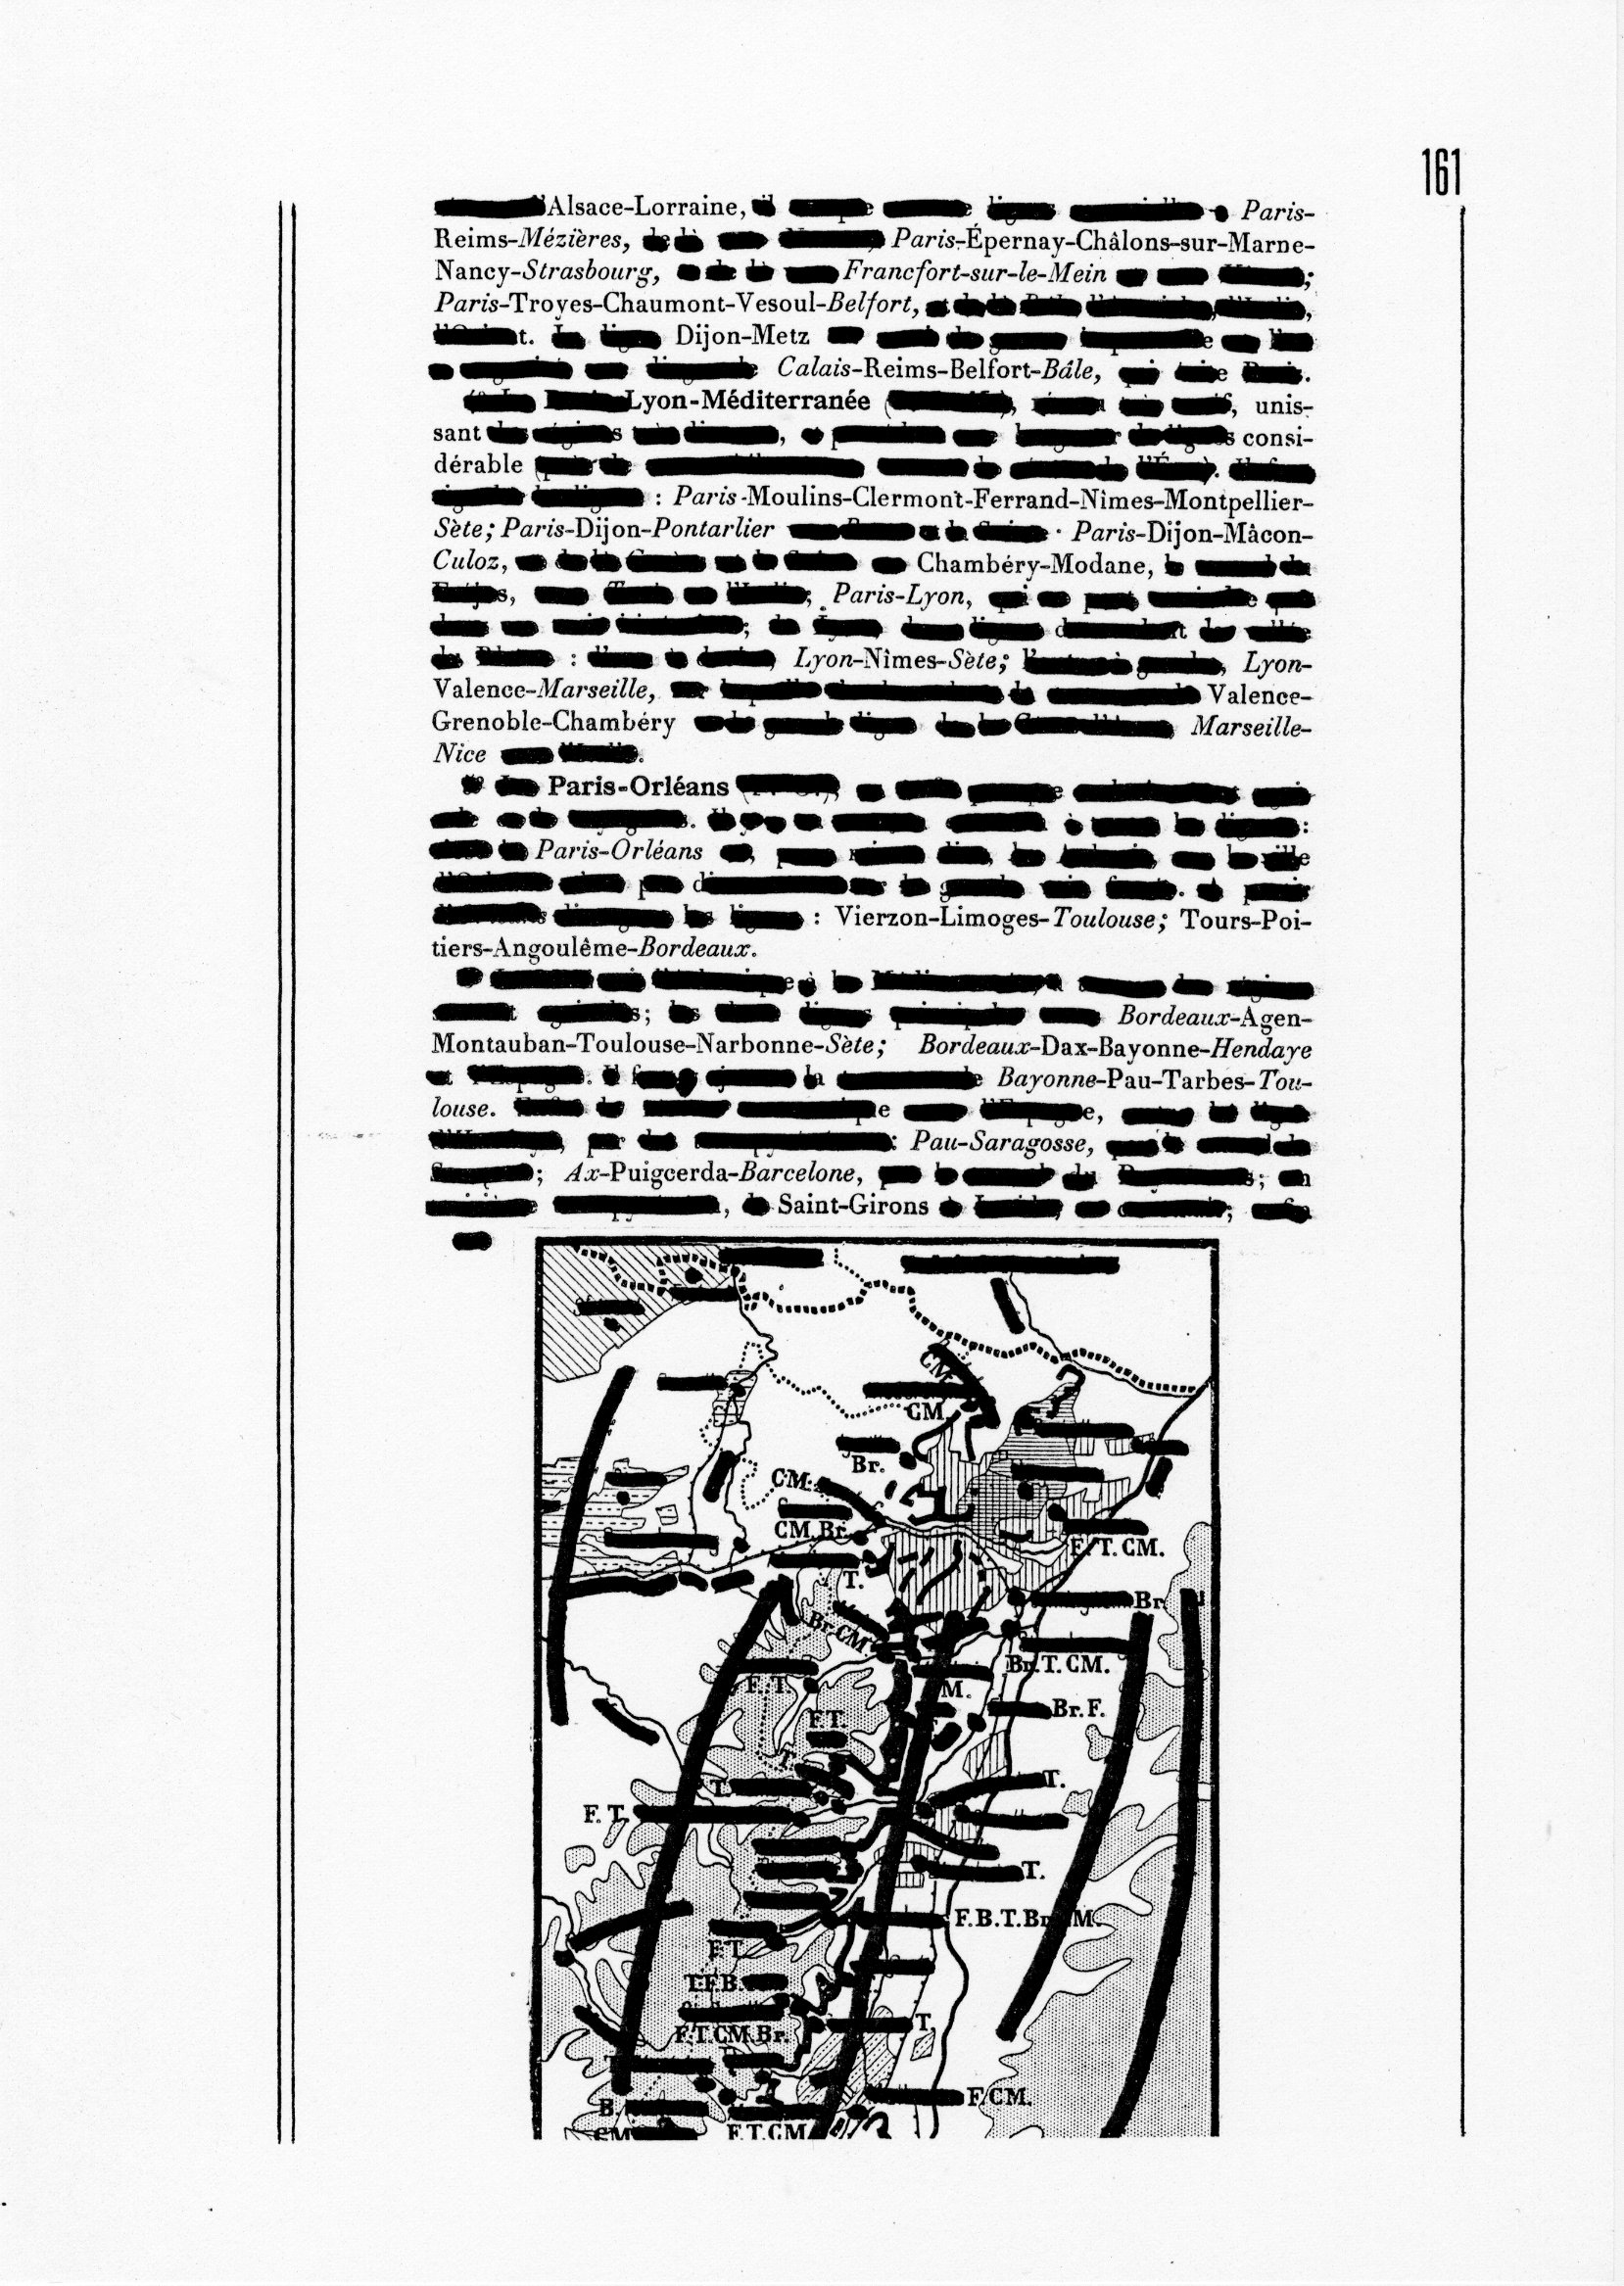 page 0161 ELEMENTS DE GEOGRAPHIE L. Fournier VENT